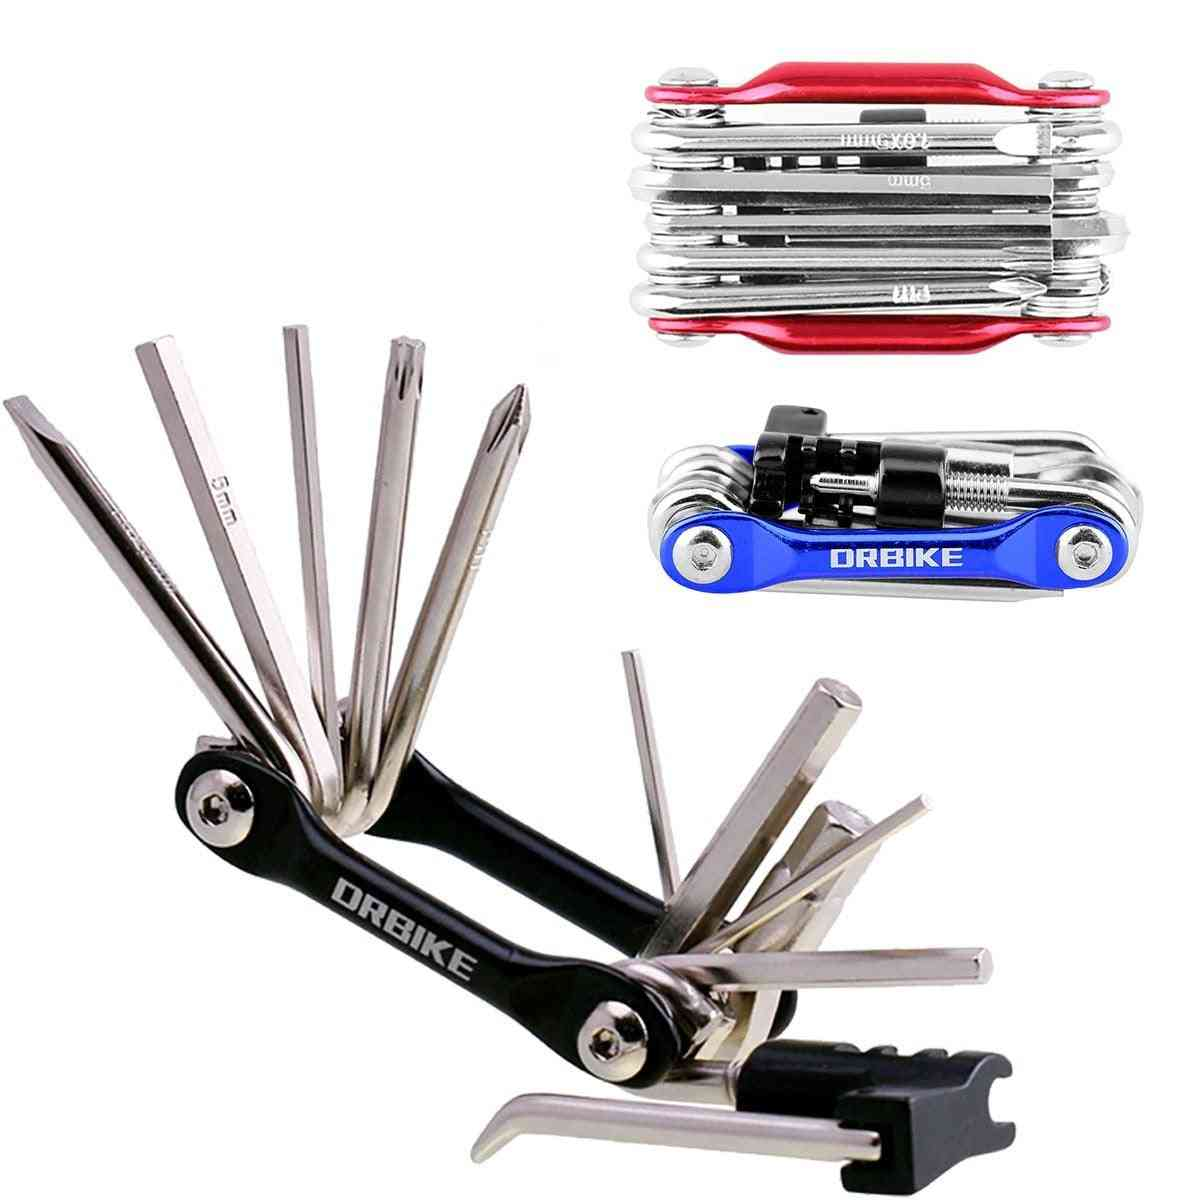 Bicycle Multifunction Tire Repair Tool -set With Screwdriver